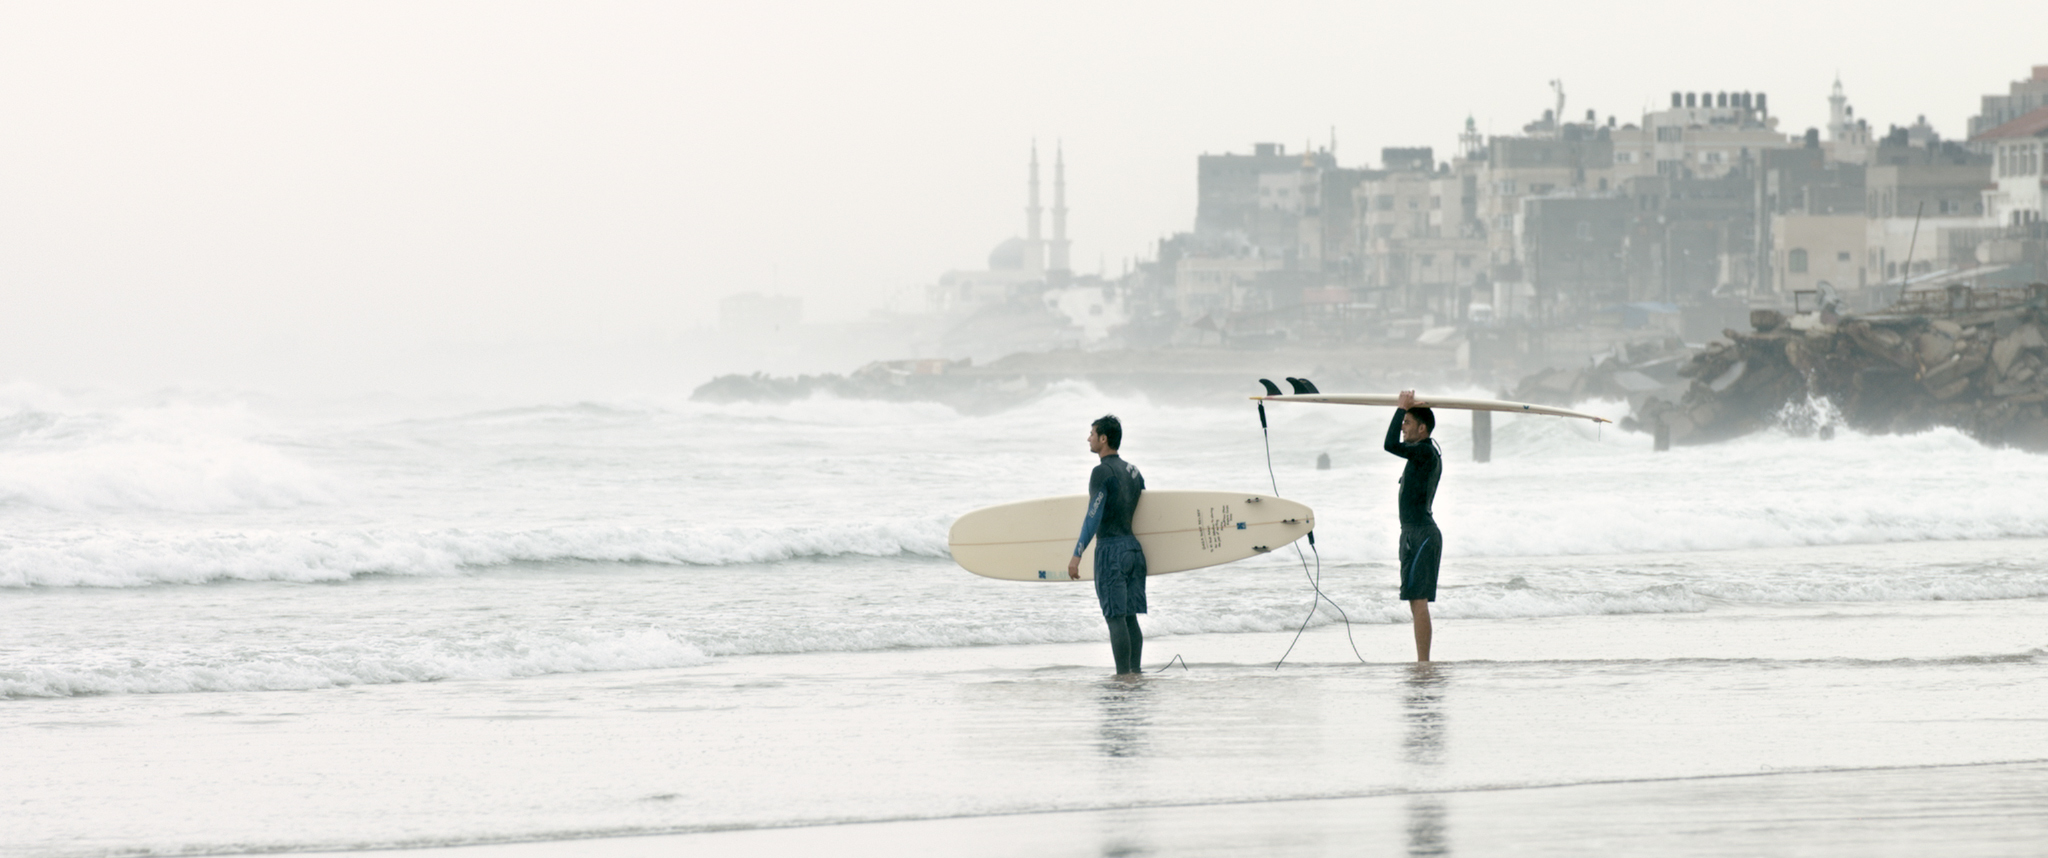 Gaza Surf Club - A film by Philip Gnadt & Mickey Yamin